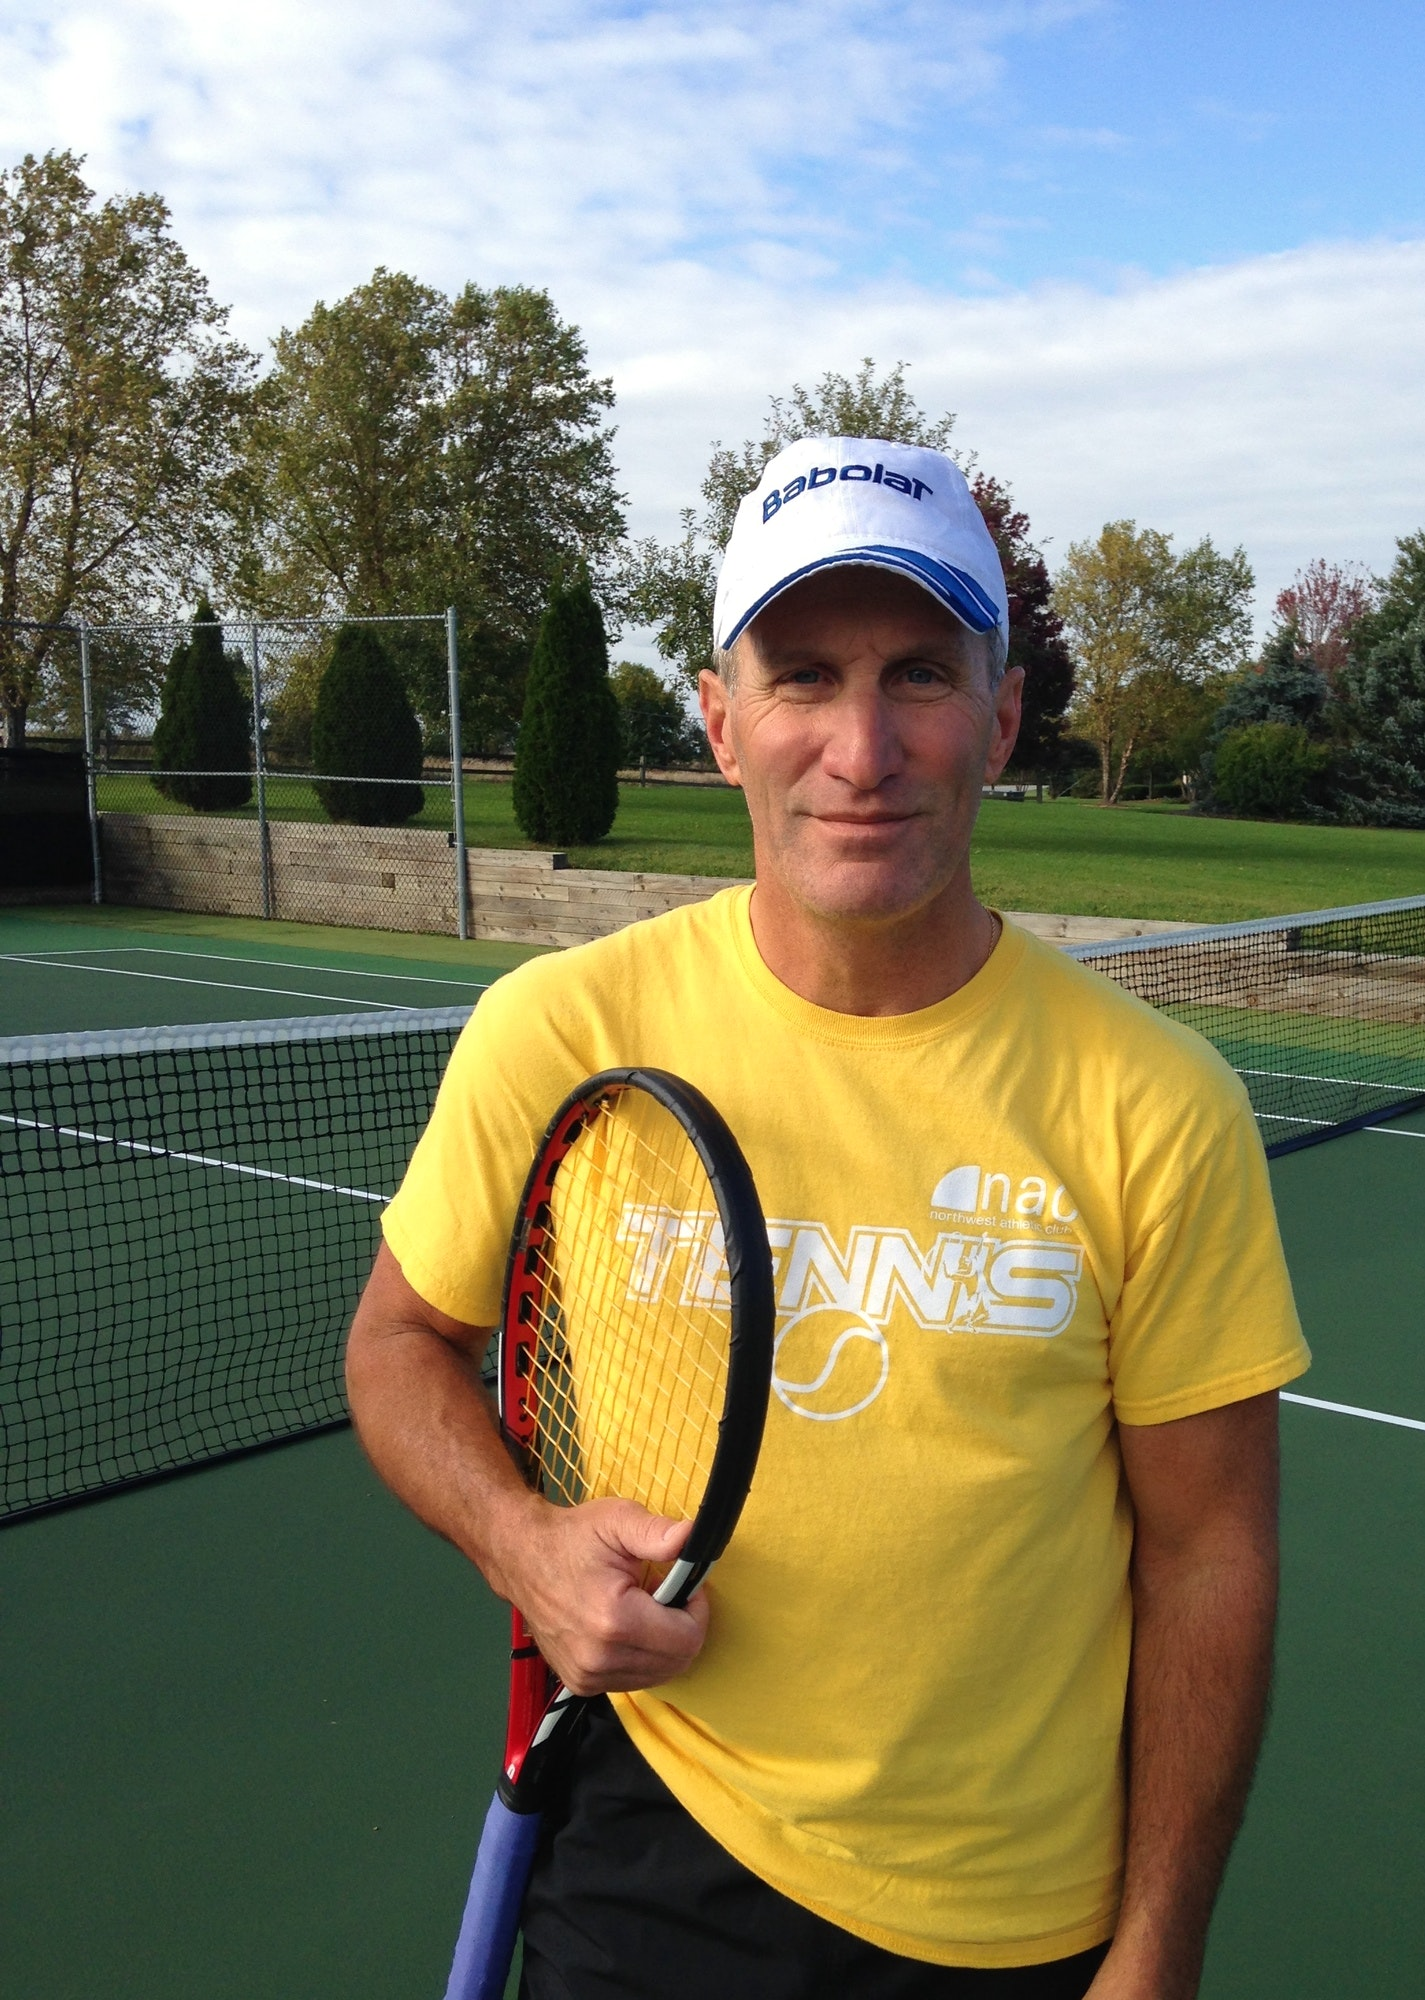 Douglas P. teaches tennis lessons in Orland Park , II